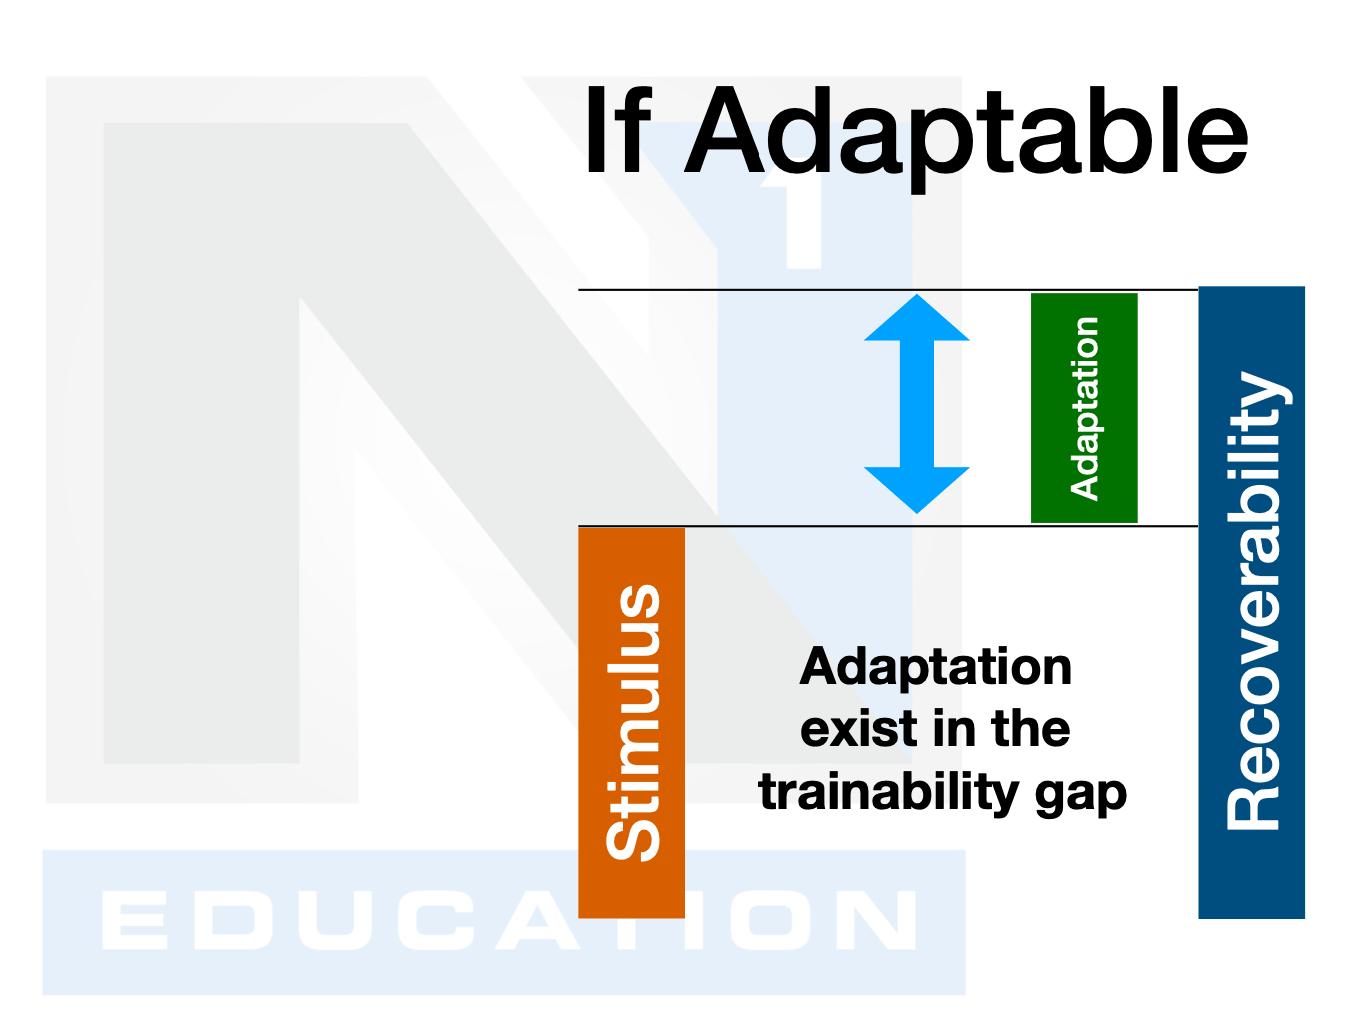 trainability gap